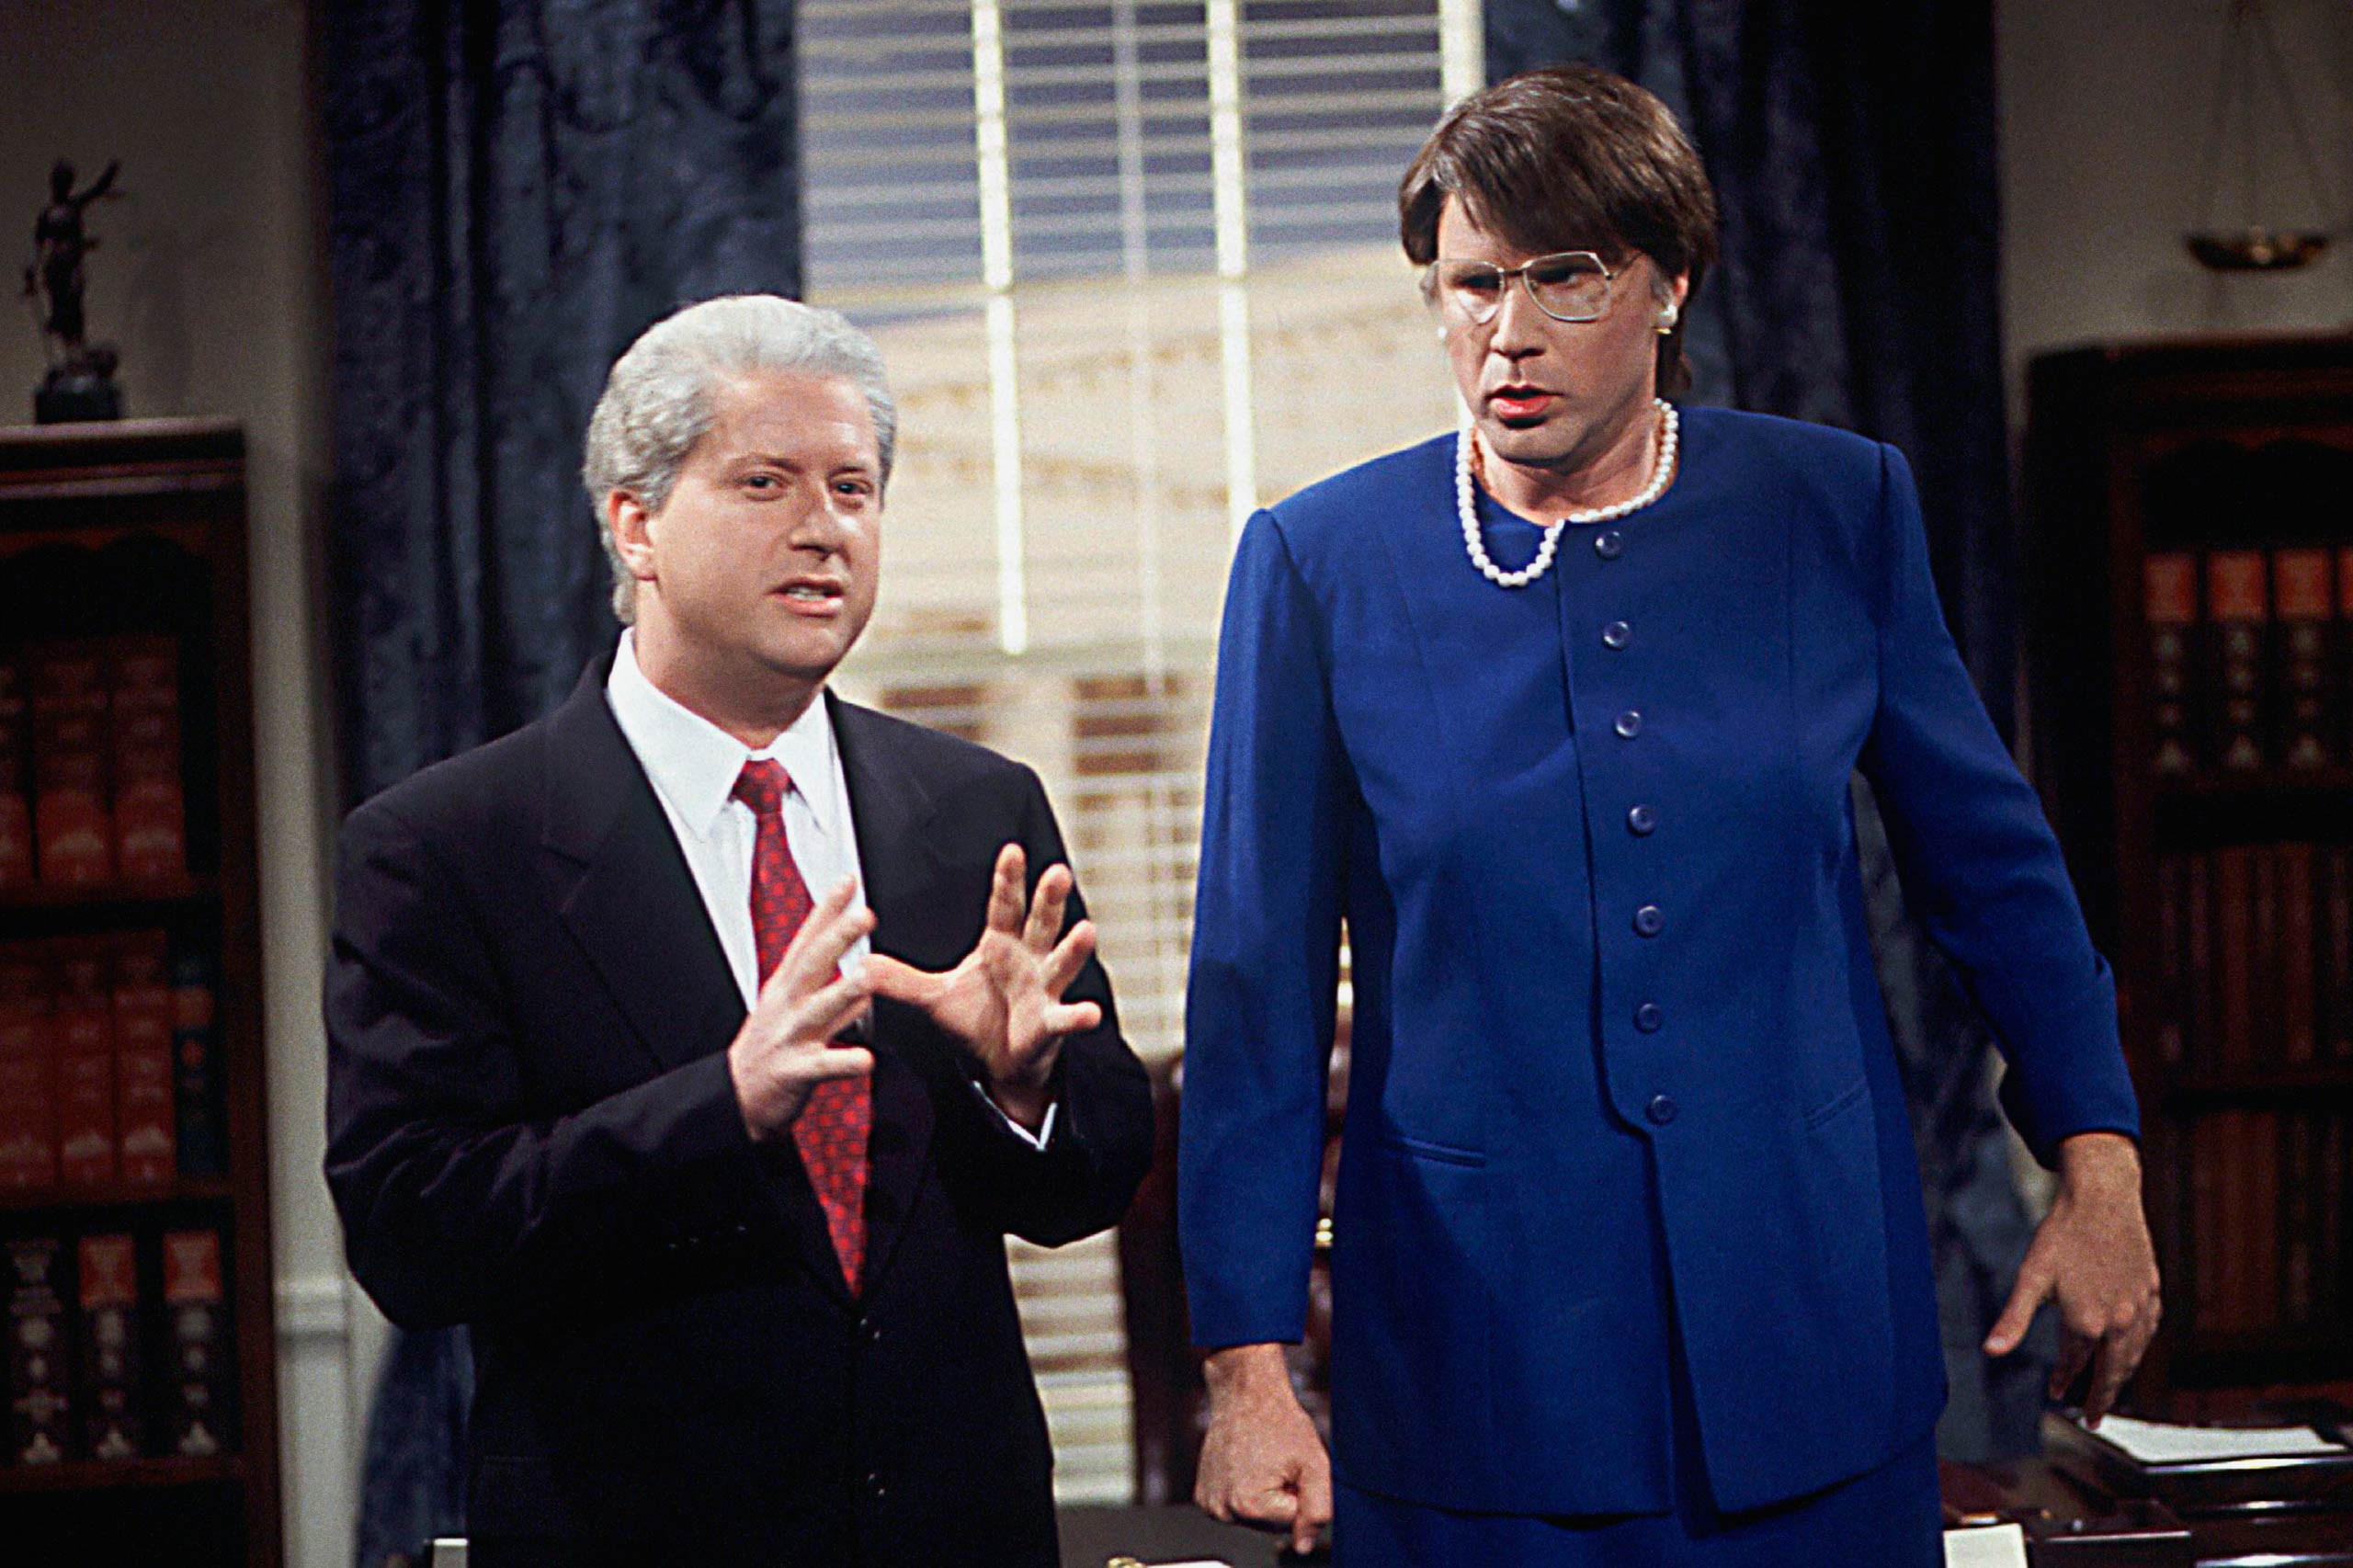 From left: Darrell Hammond as Bill Clinton and Will Ferrell as Janet Reno in 2007.